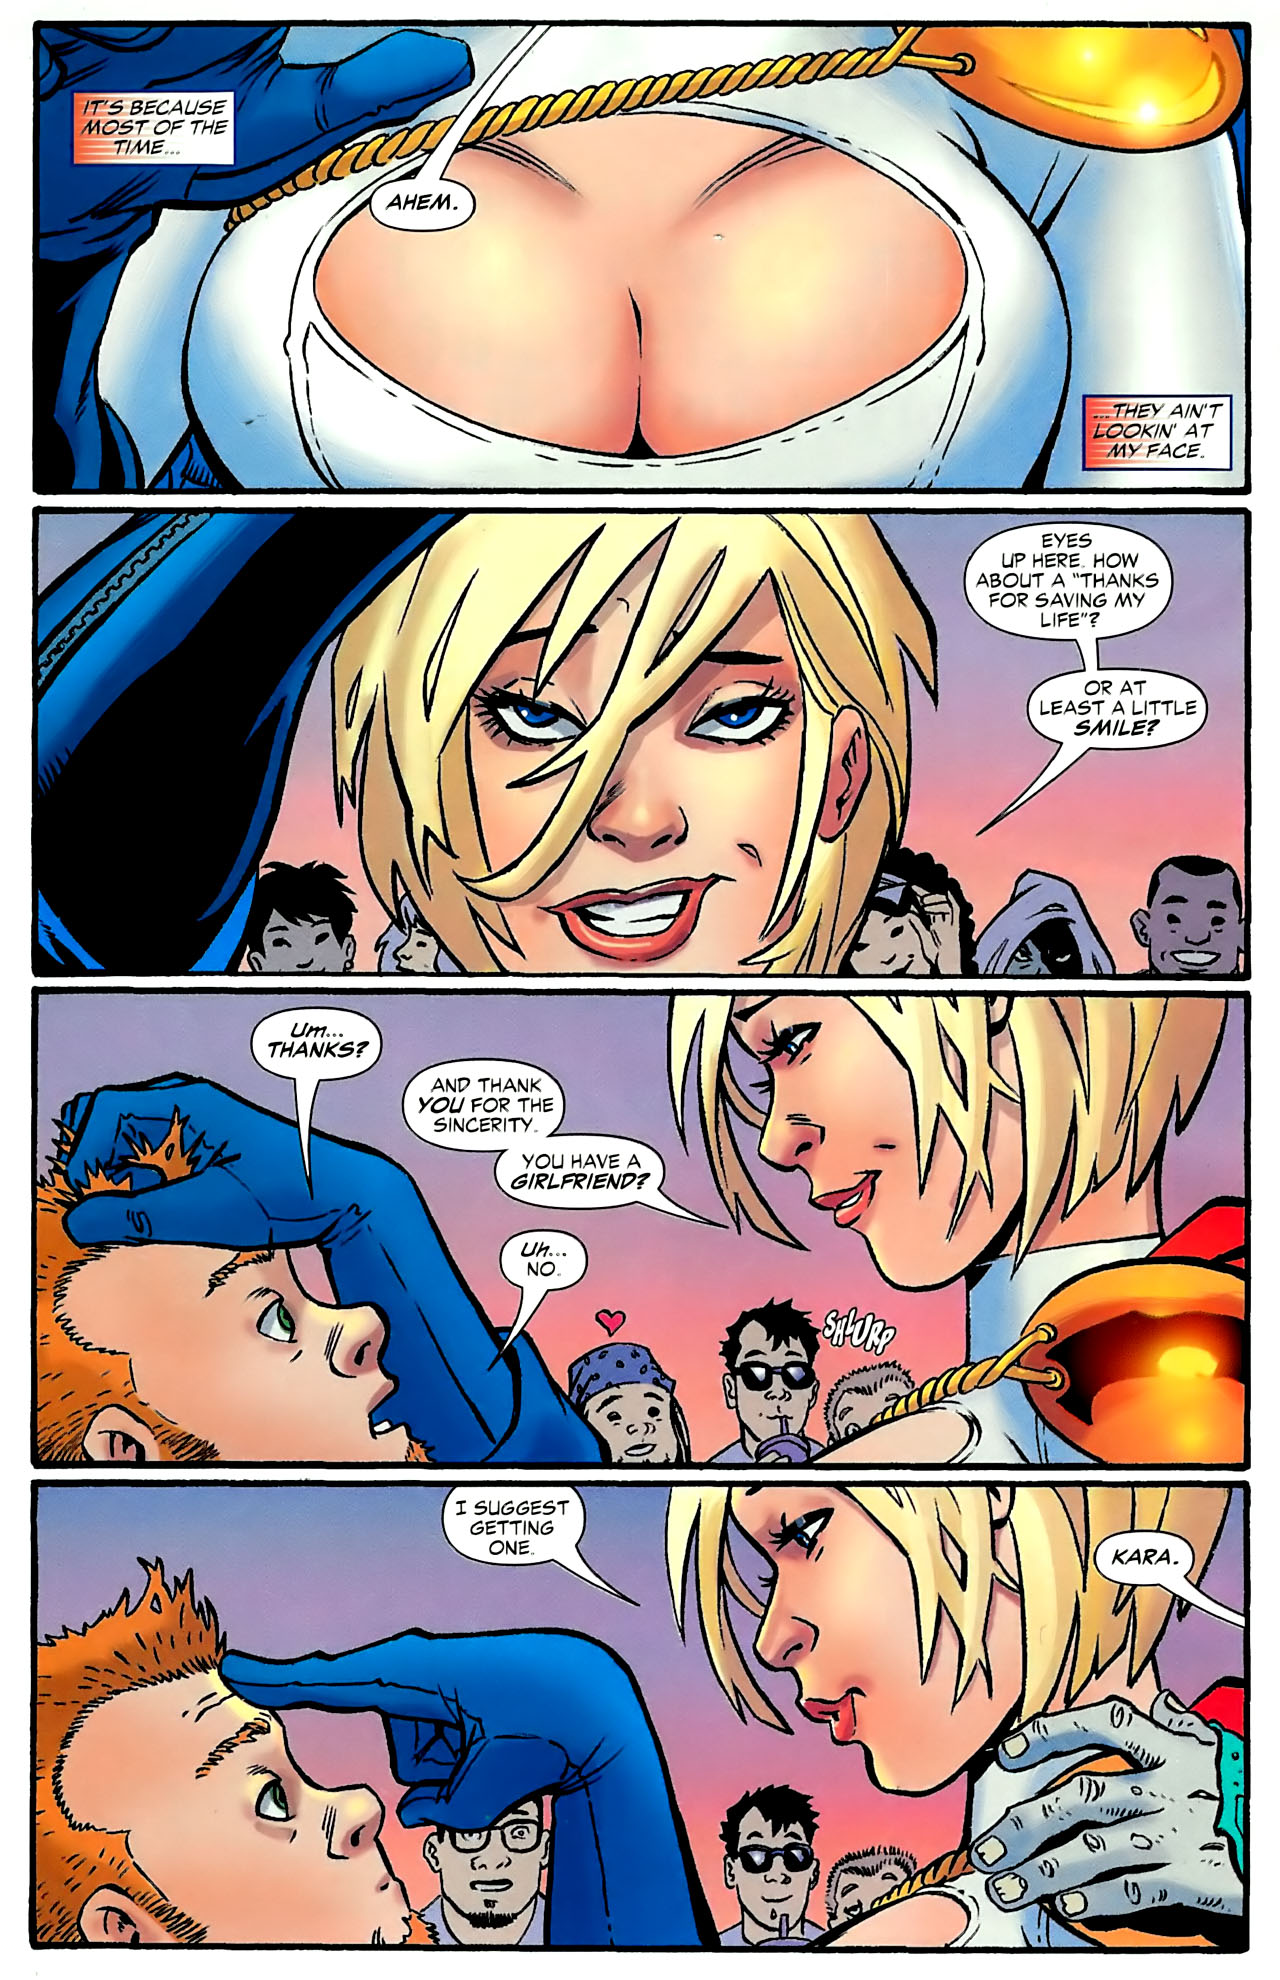 Sexy pitchers of power girl naked